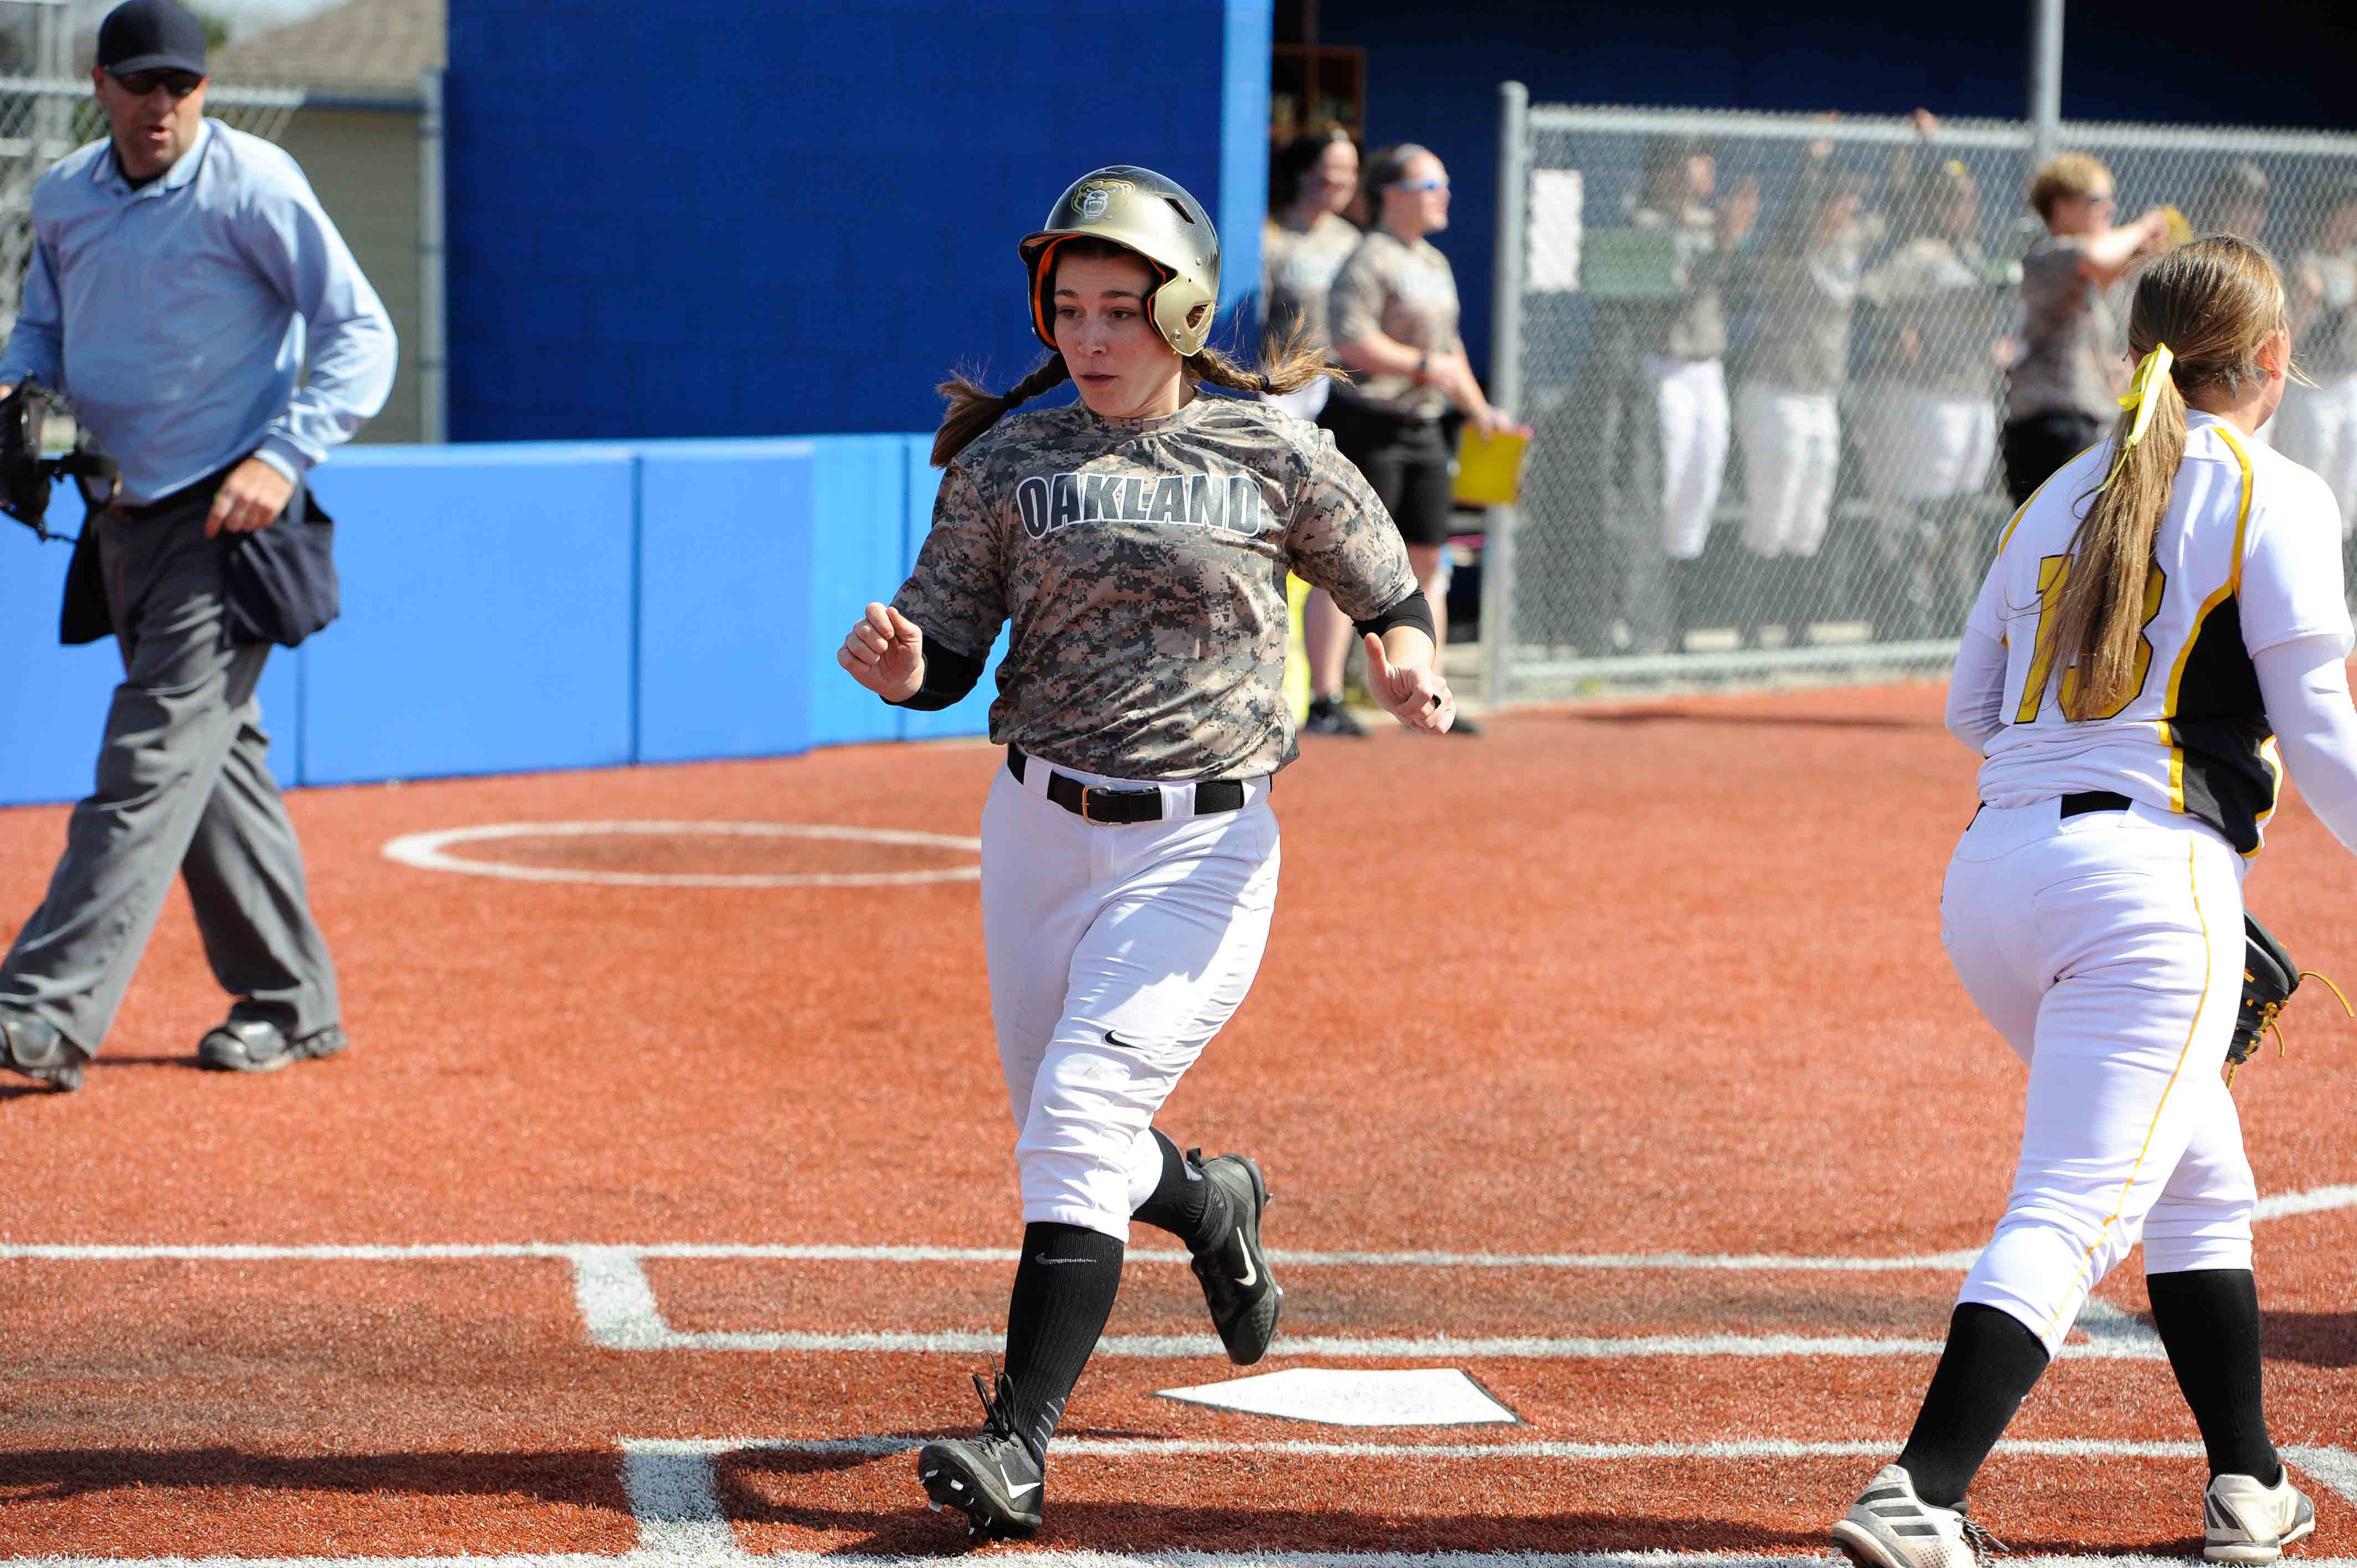 Abbey Walewski contributed a RBI single in the second inning of the third game against NKU.